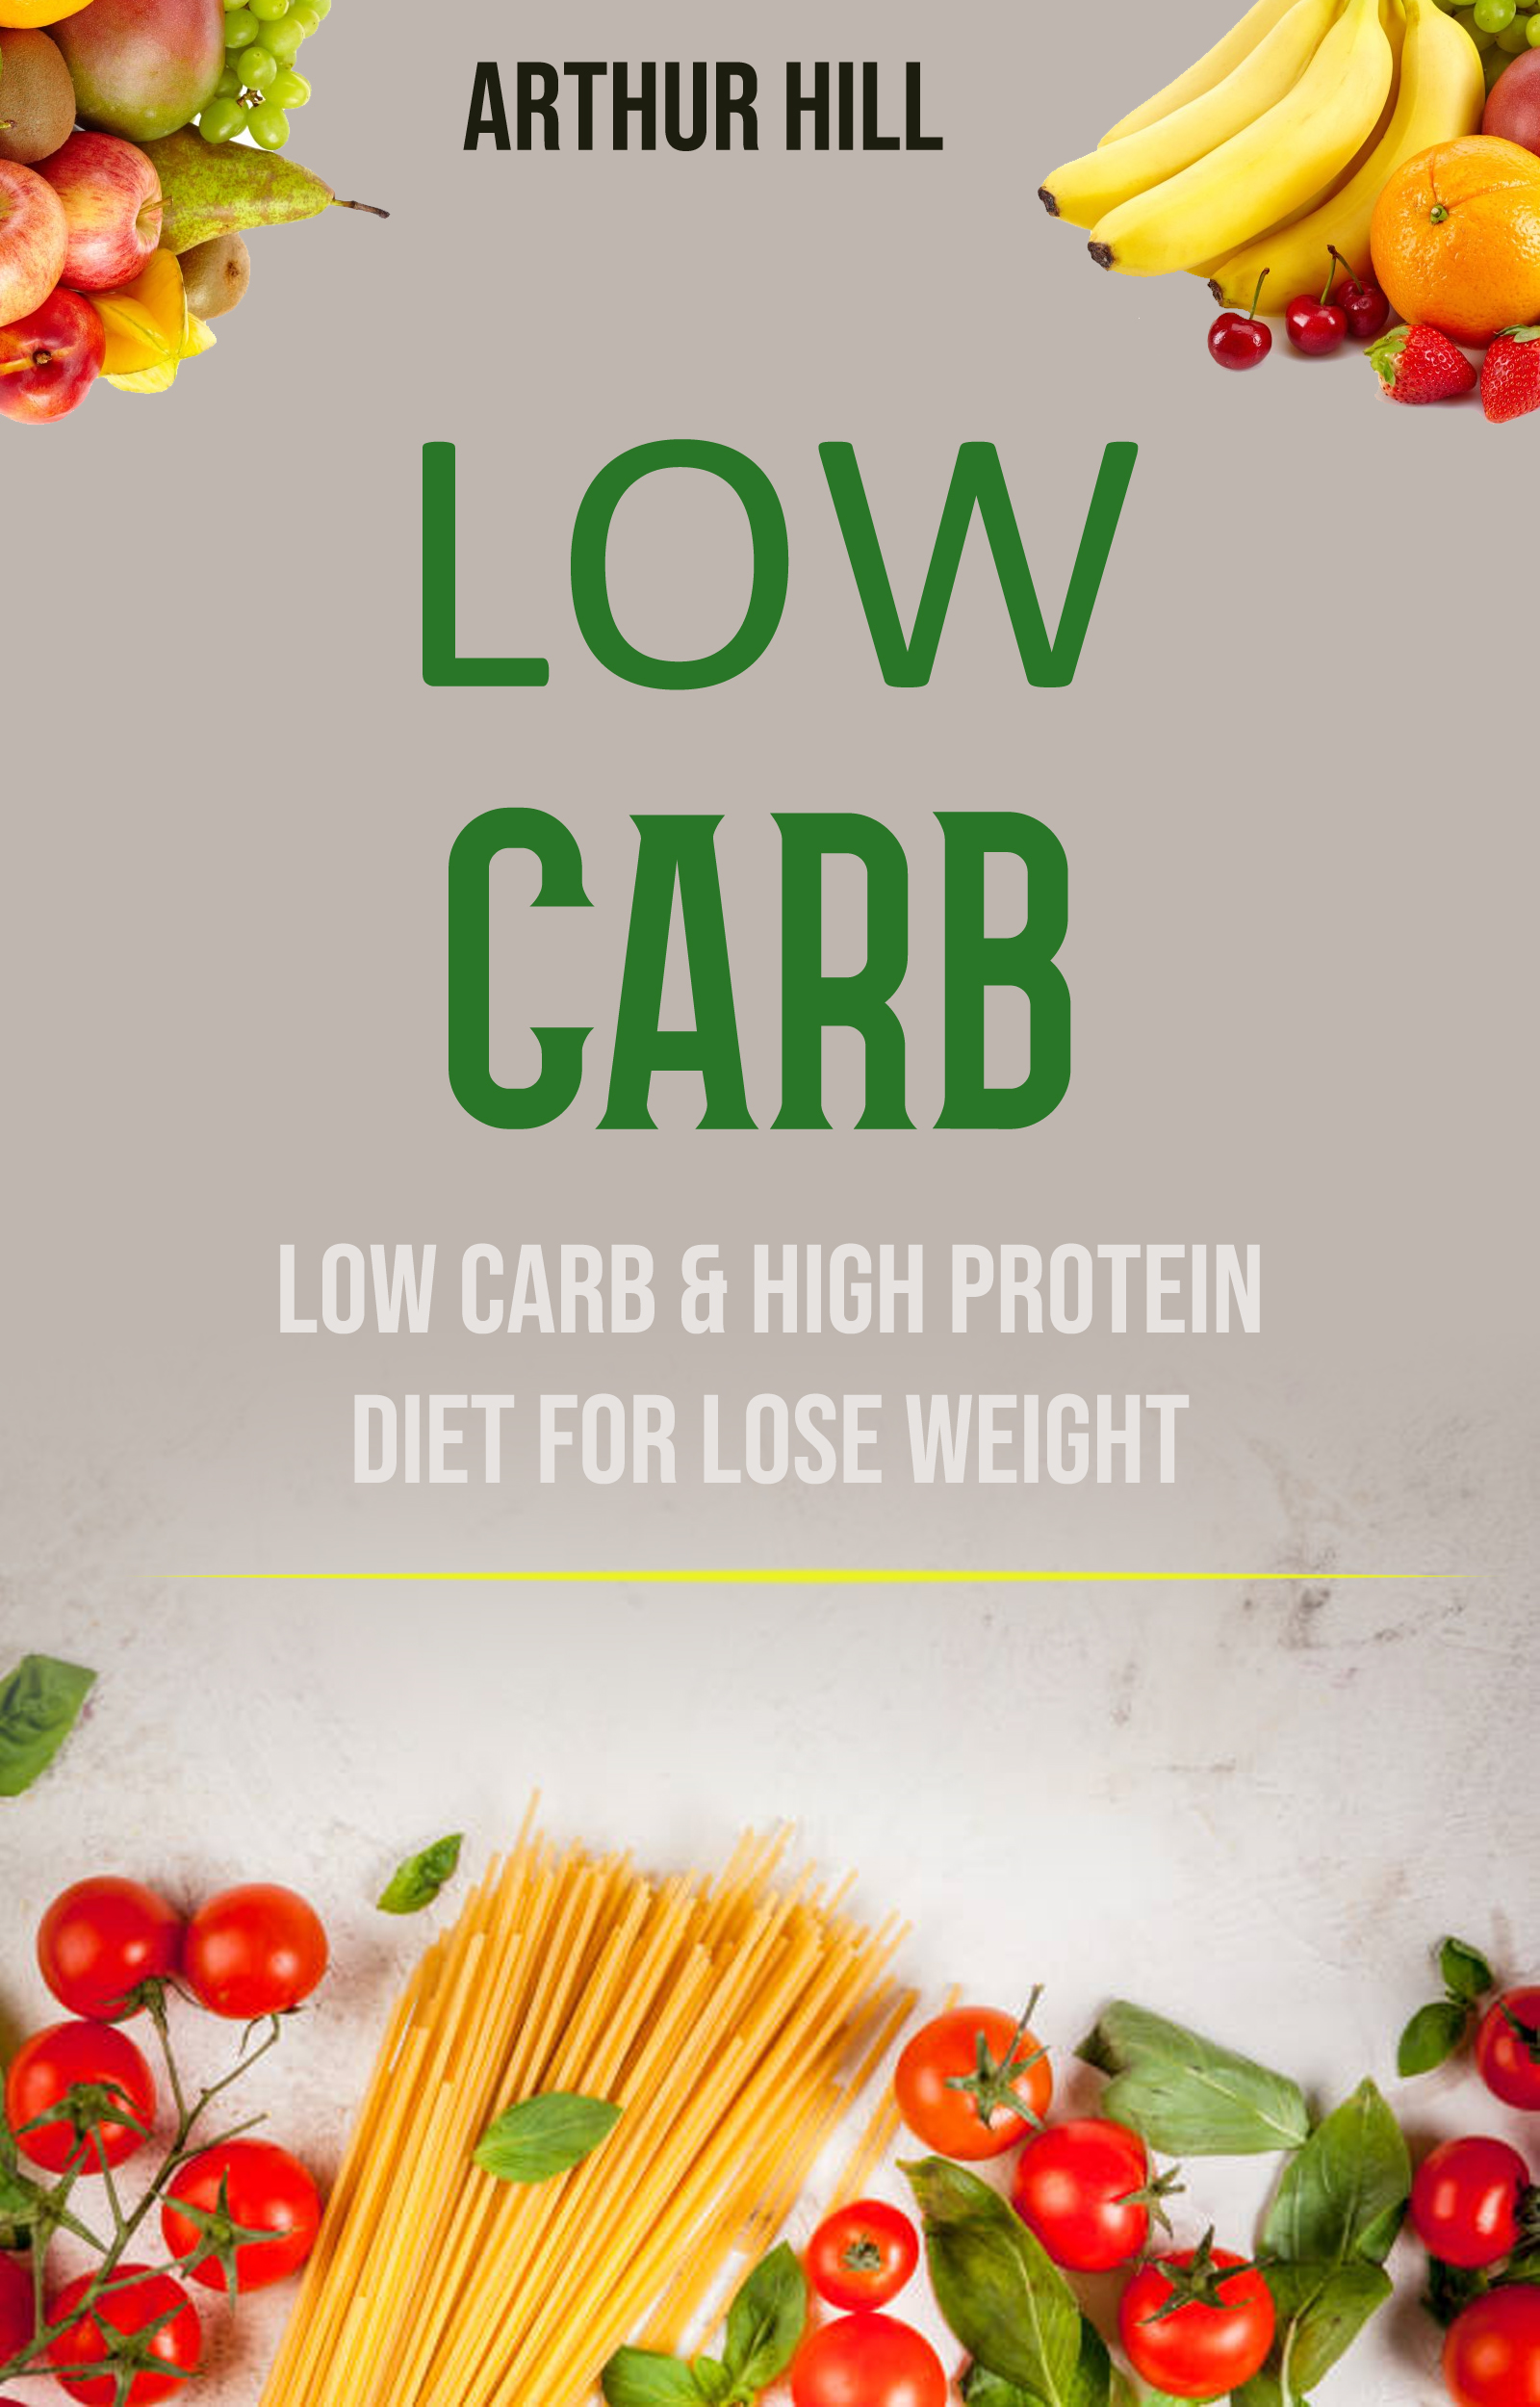 Low carb: low carb & high protein diet for lose weight